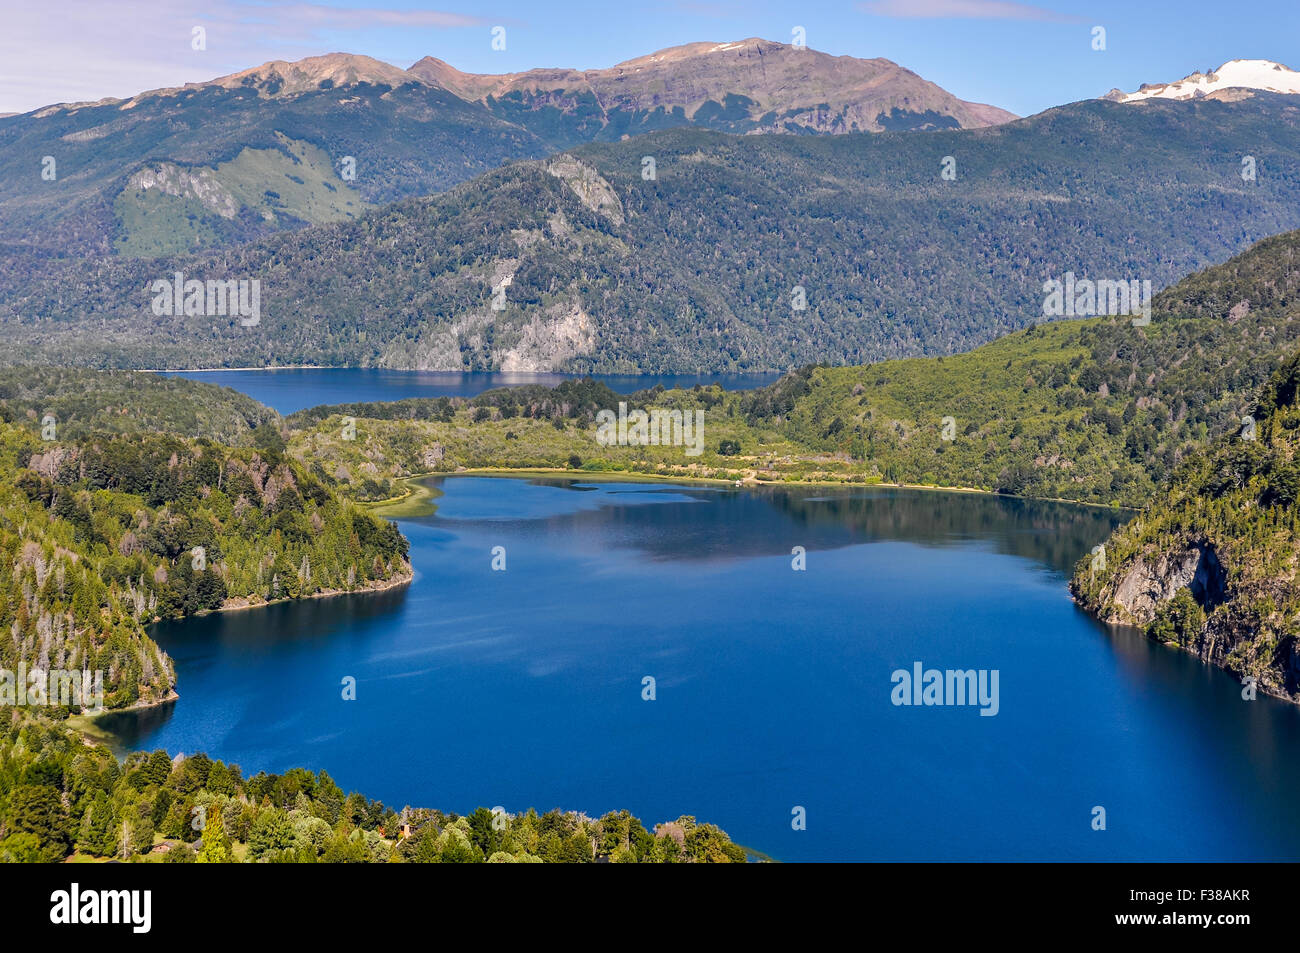 View of Lago Verde, Alerces National Park, Patagonia, Argentina - Stock Image